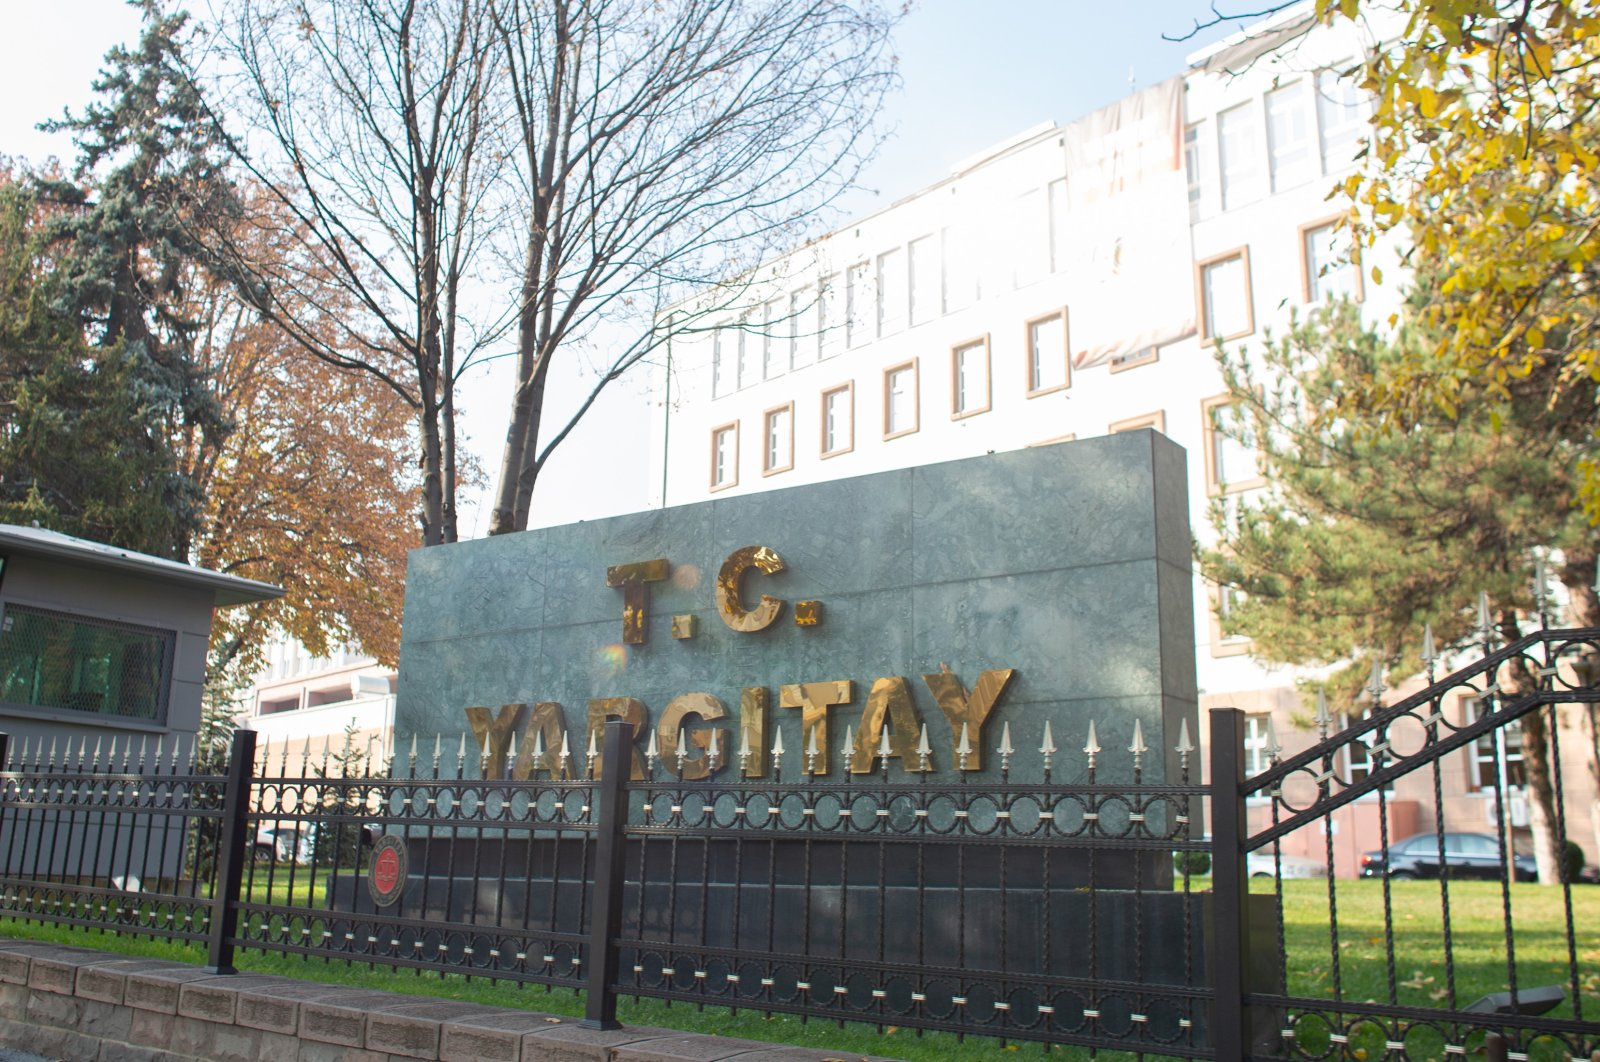 A sign for the Court of Cassation sits in front of its building in the capital Ankara, Turkey, Nov. 13, 2018. (Shutterstock Photo)